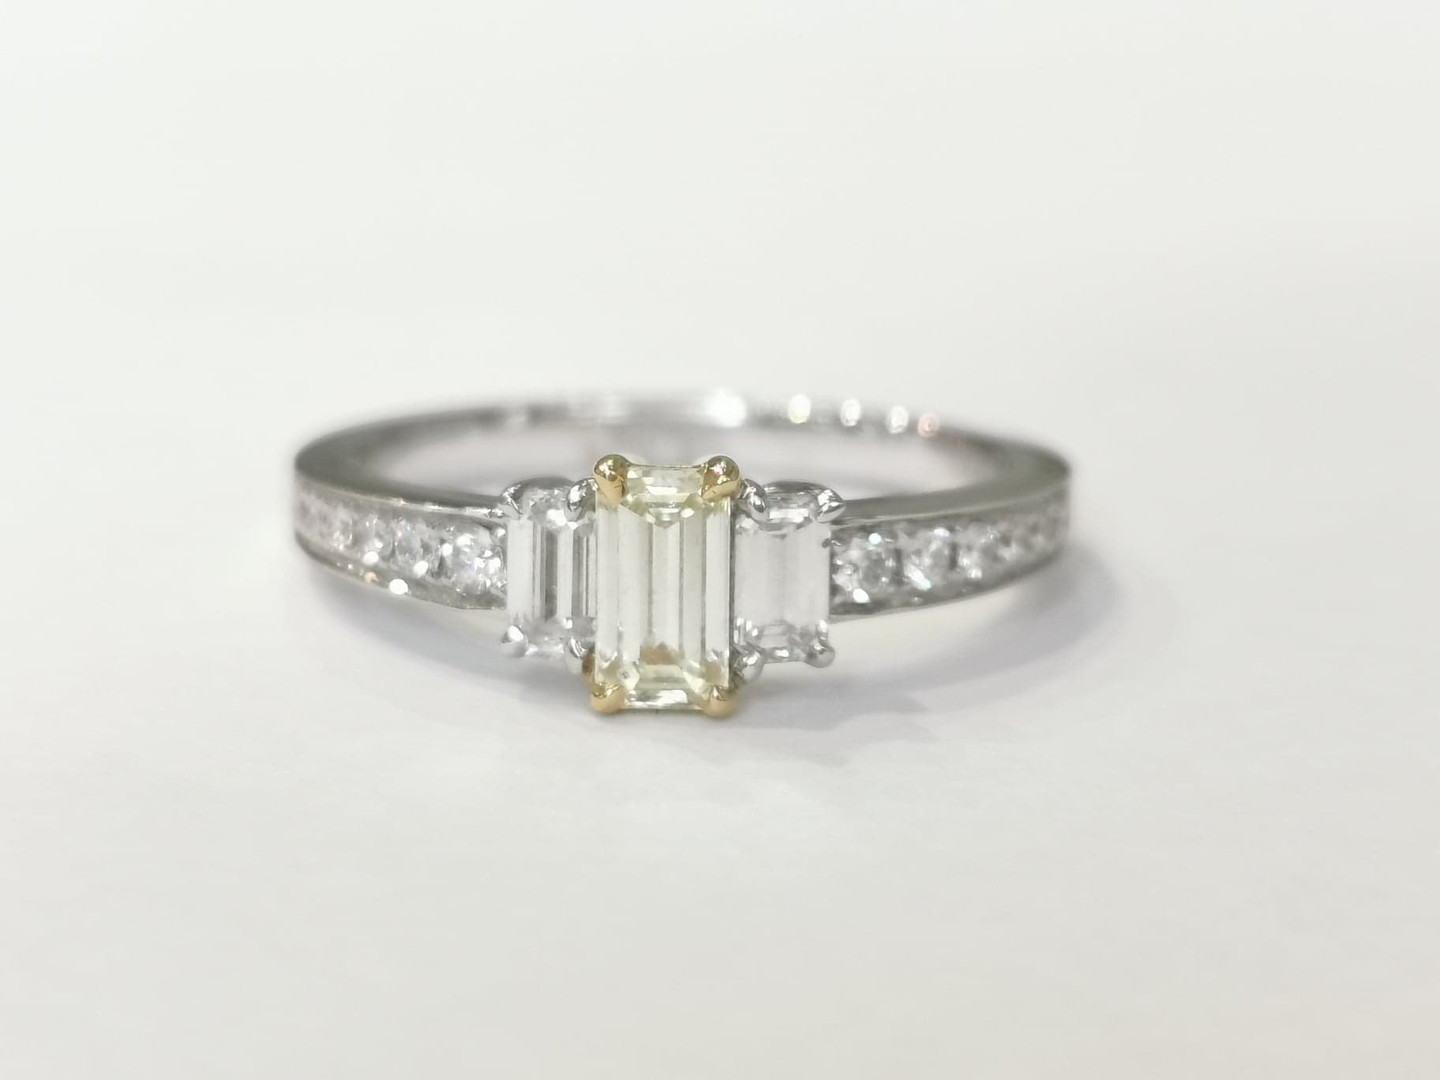 42976 18ct white gold 0.36ct yellow diamond + 0.51ct white diamonds £2500